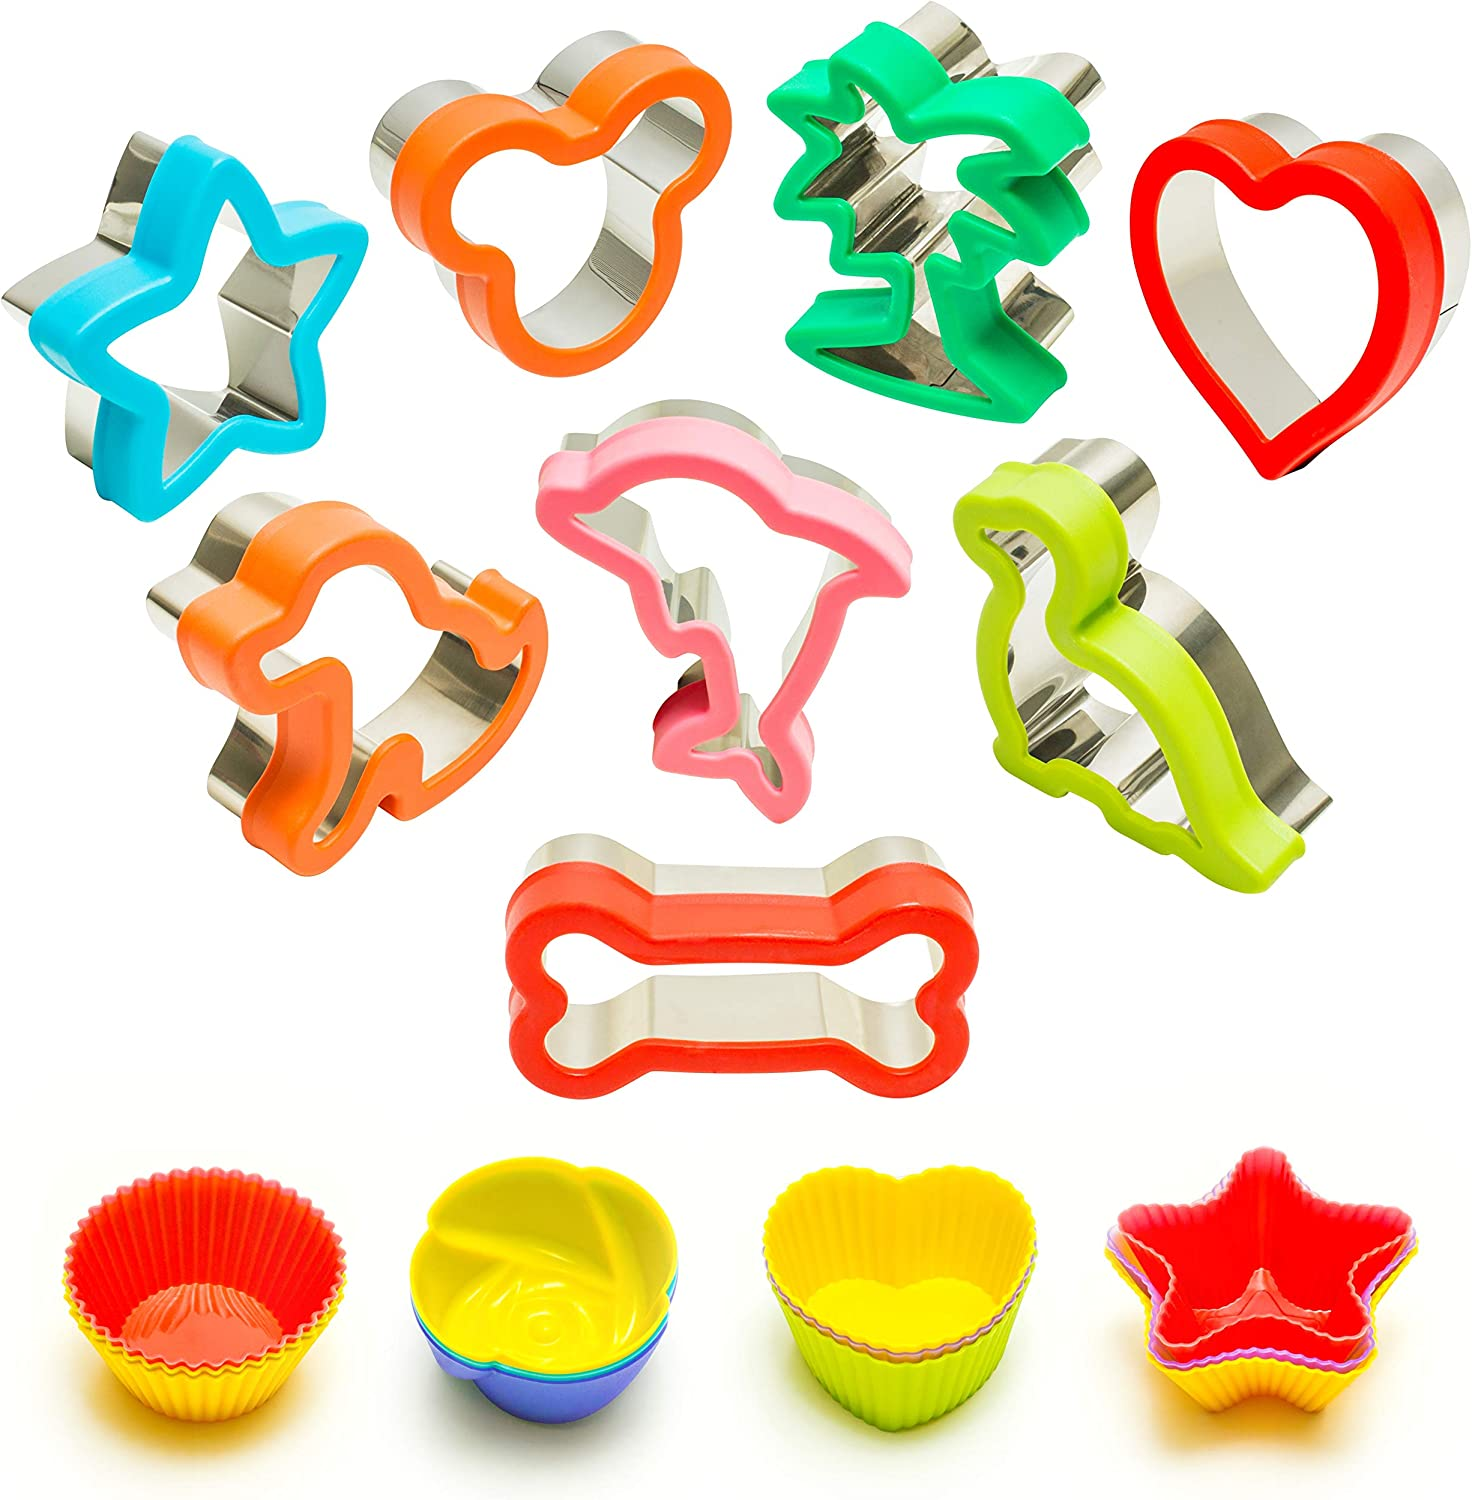 Cookie Cutters Shapes - Sandwich Cutters for Kids - Mickey - Tree - Heart - Star - Dog - Dinosaur - Dolphin - Bone with 12 Reusable Silicone Baking Cups